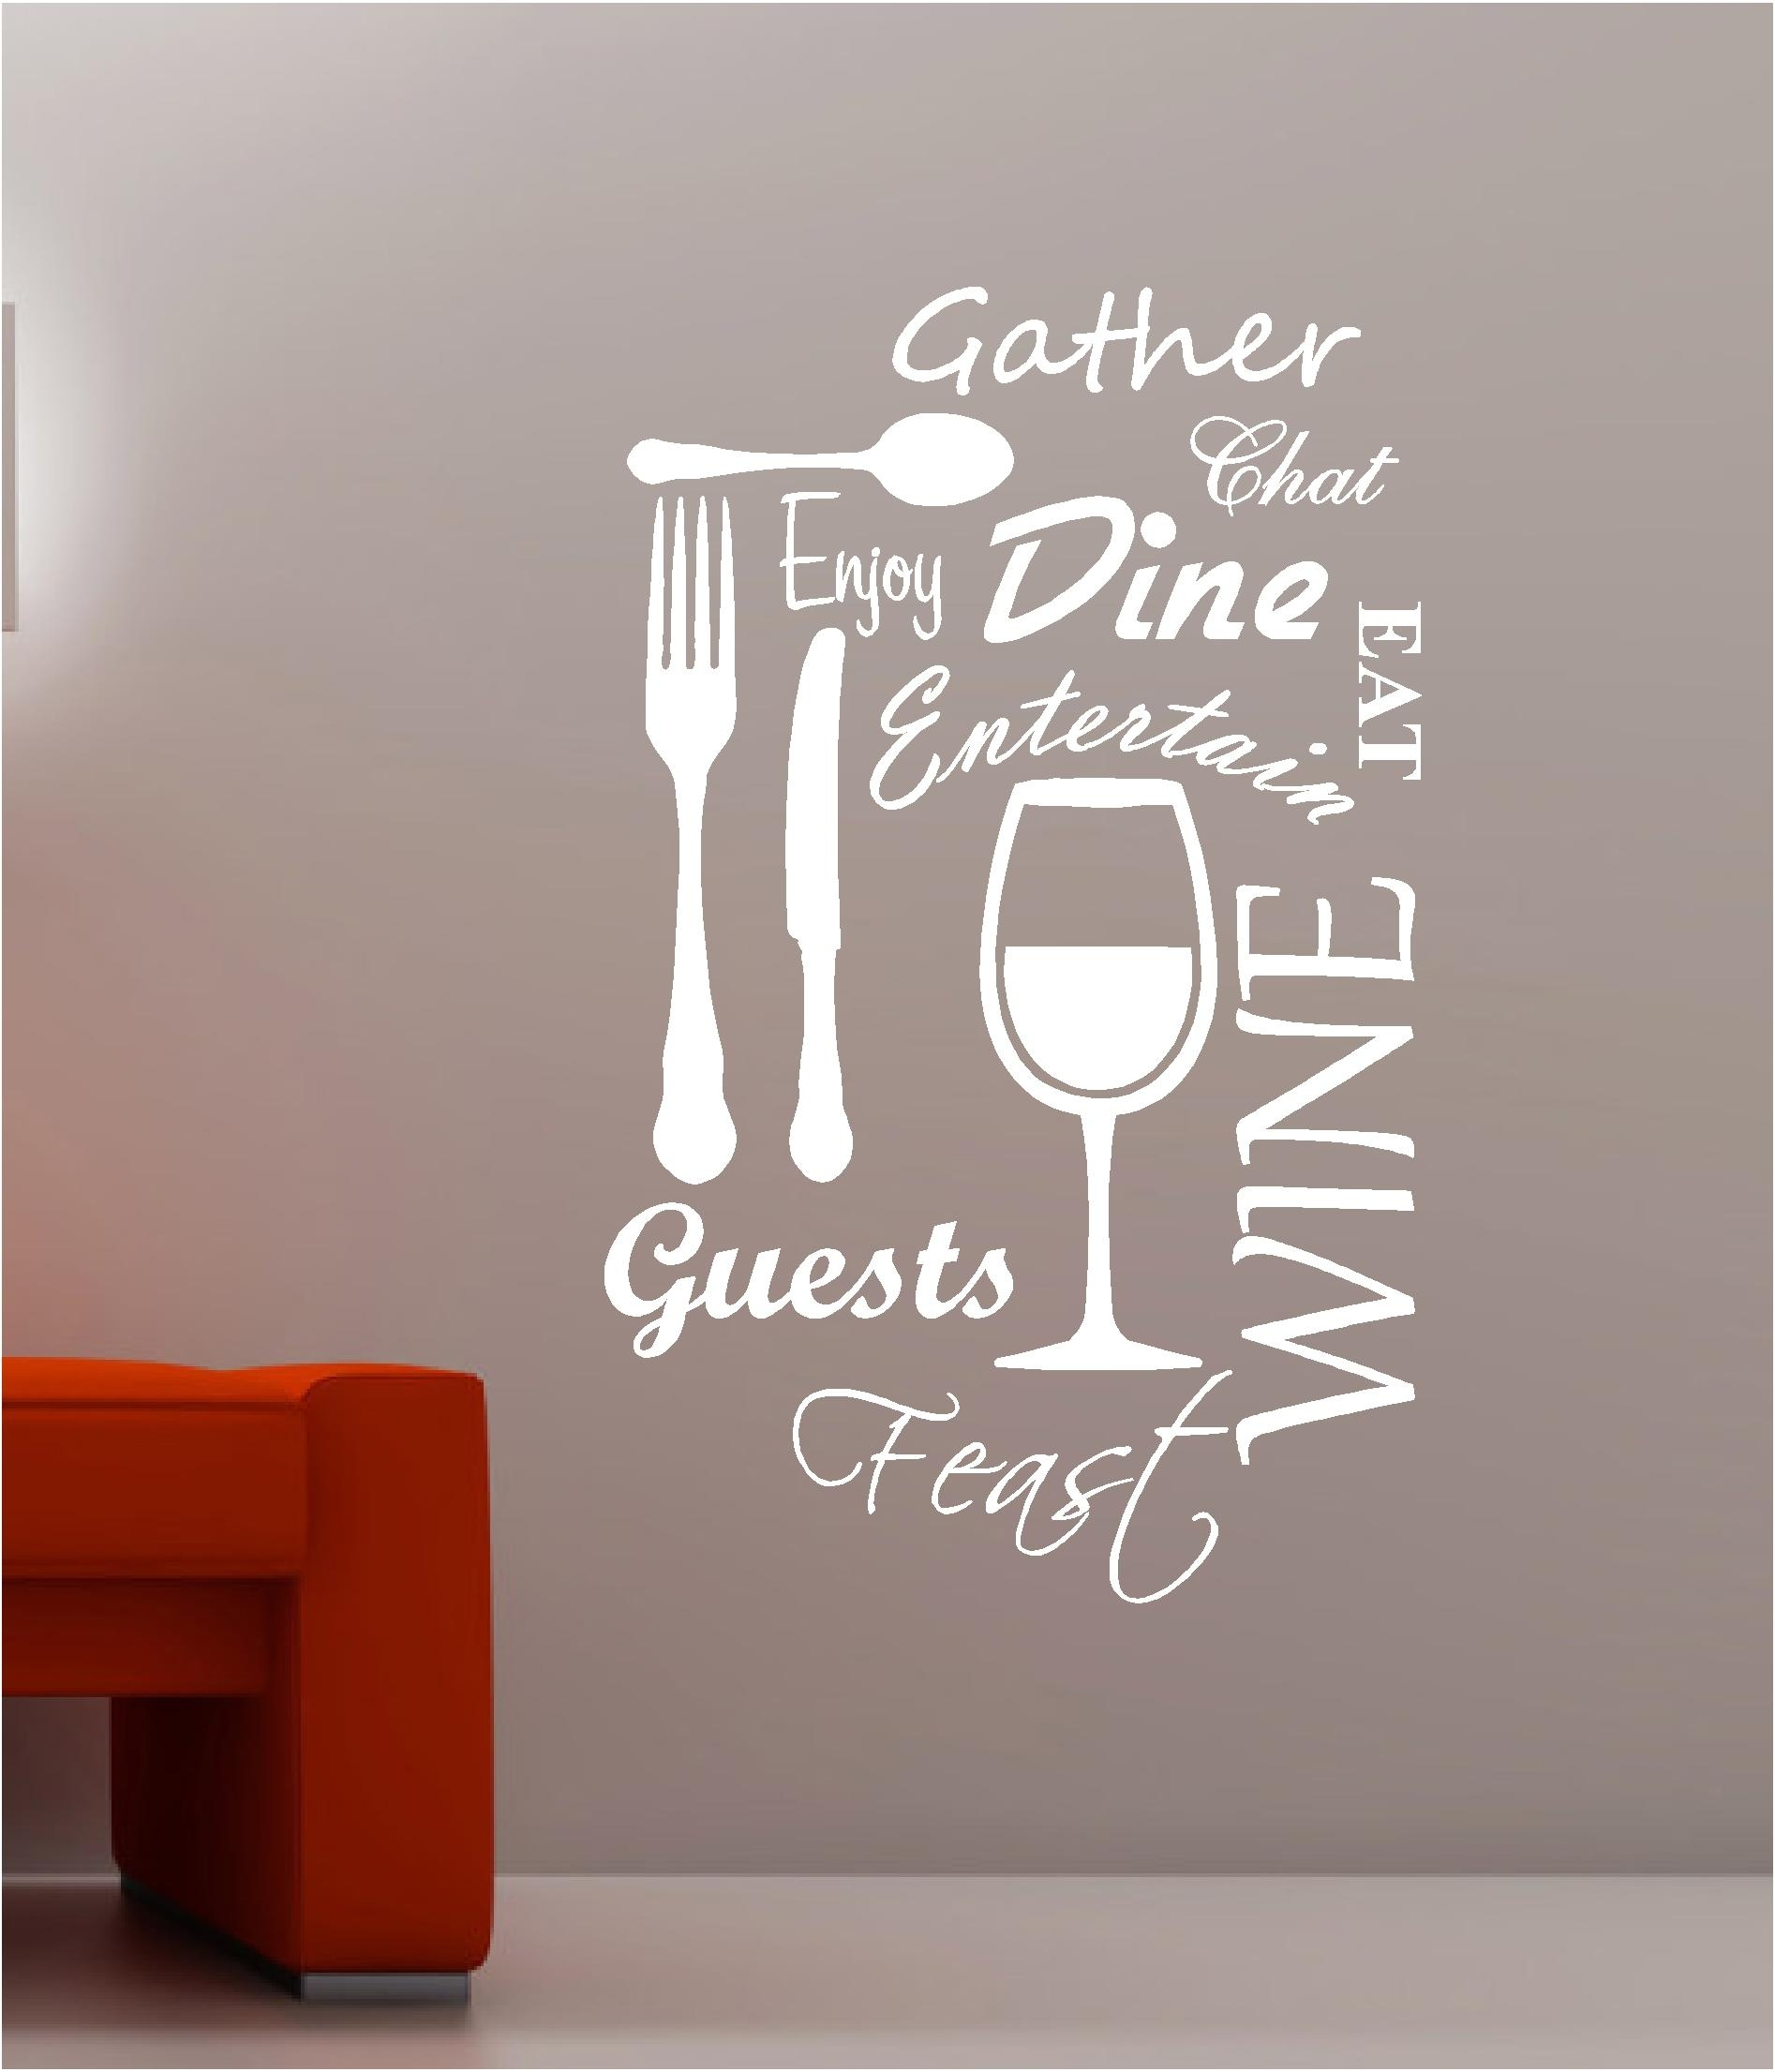 Wall Art Designs: Kitchen Wall Art Decor Kitchen Quotes Wall Art Within Wall Art For The Kitchen (Image 15 of 20)